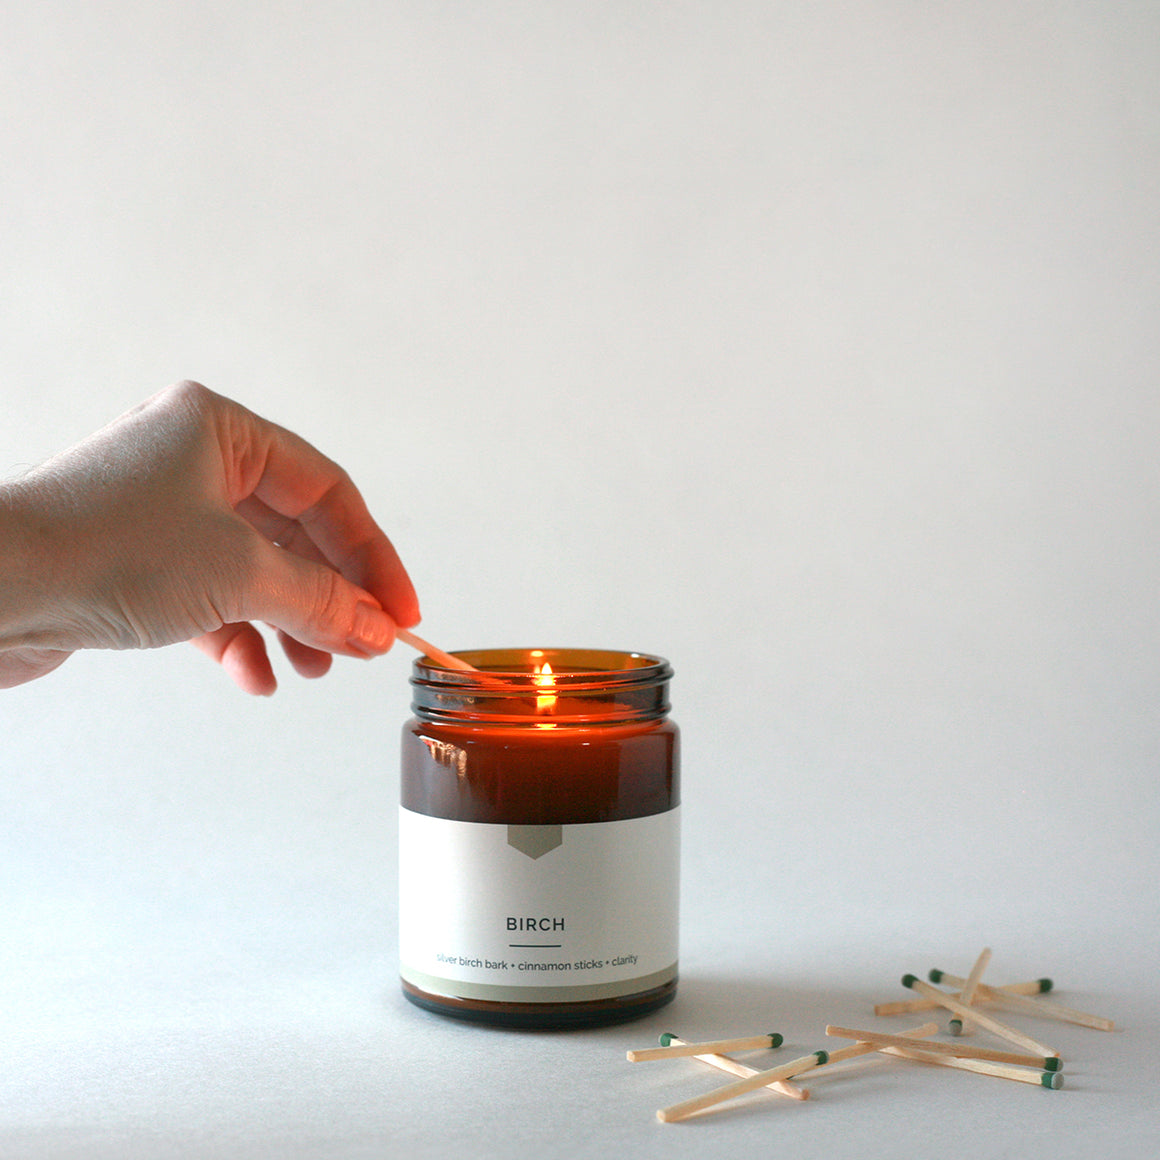 BIRCH Amber Love Soy Candle